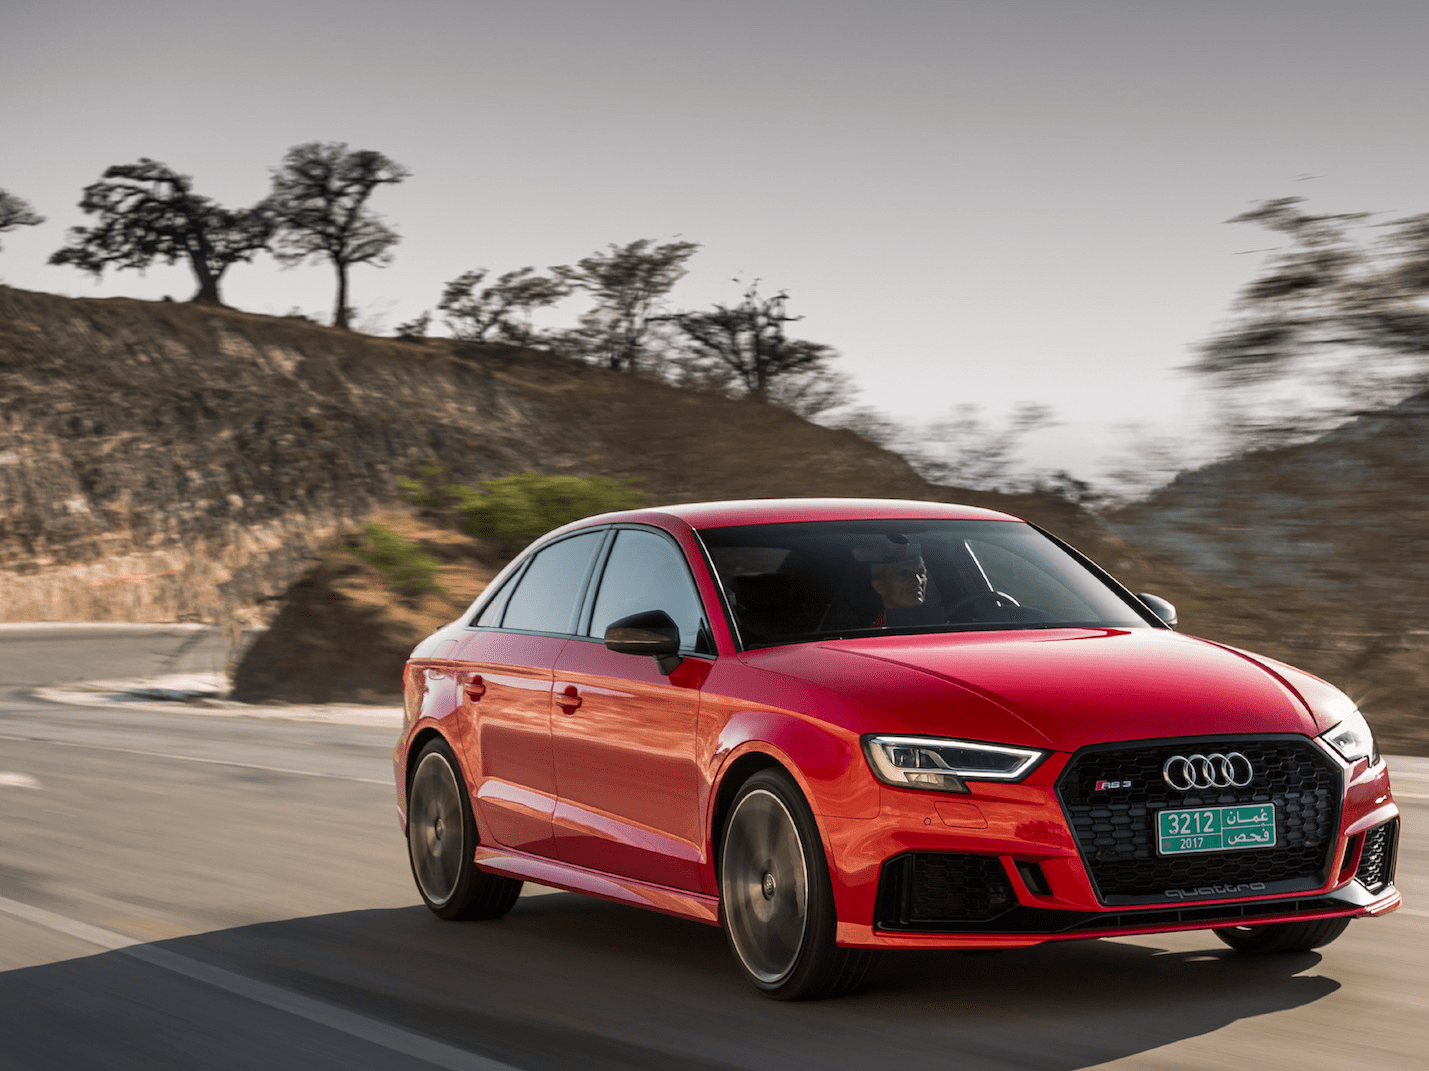 Audi apologizes for its social media campaign